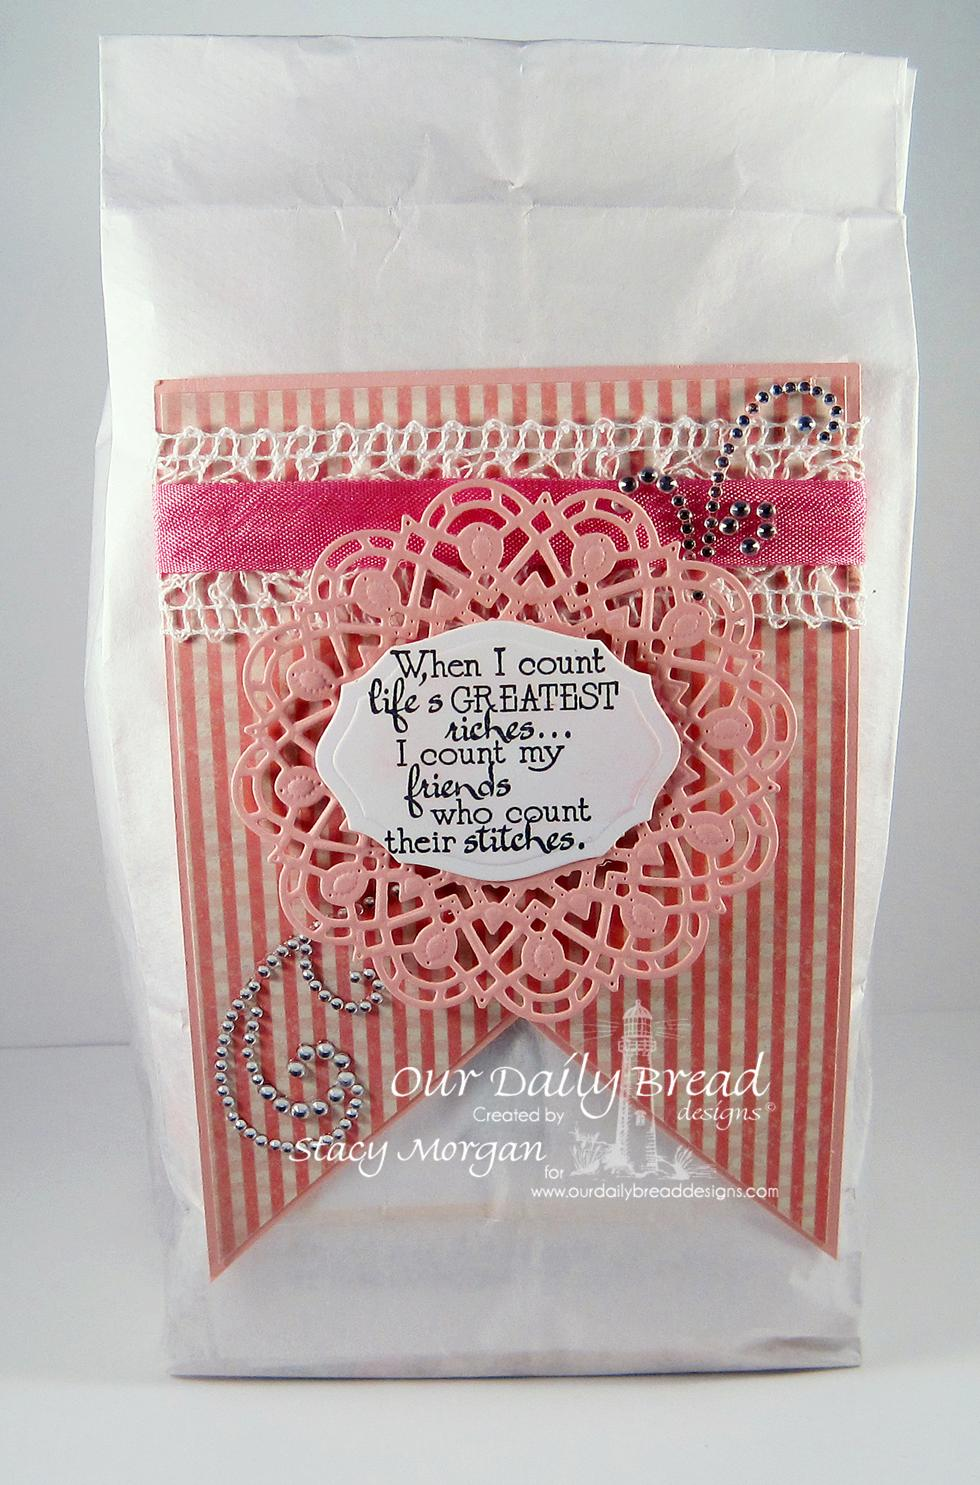 Stamps - Our Daily Bread Designs Stitches, ODBD Custom Doily Dies, ODBD Custom Elegant Oval Dies